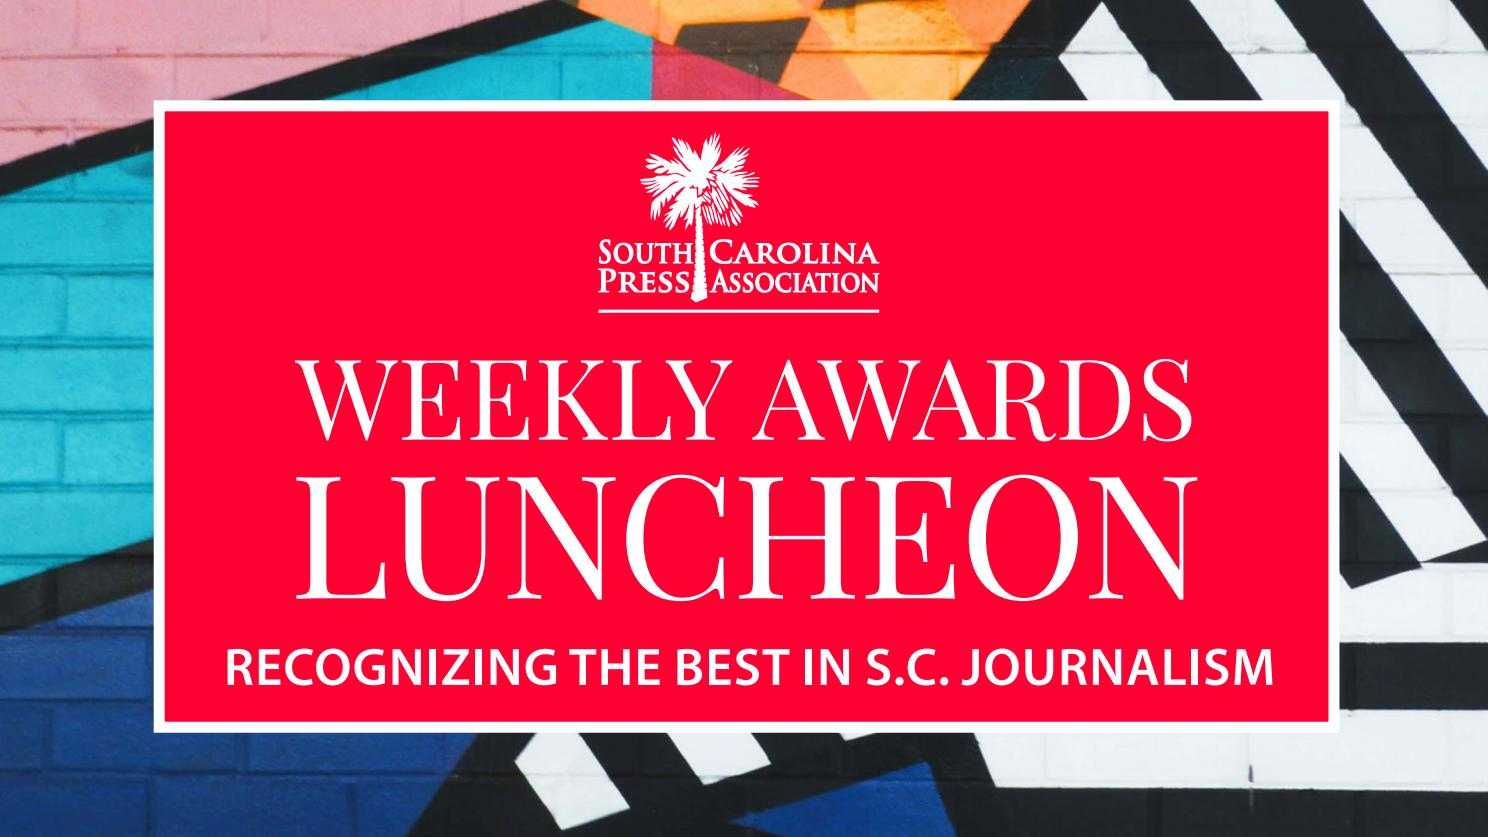 brand new 01e2a 53a0c 2019 Weekly Awards Luncheon Digital Presentation by S.C. Press Association  - issuu